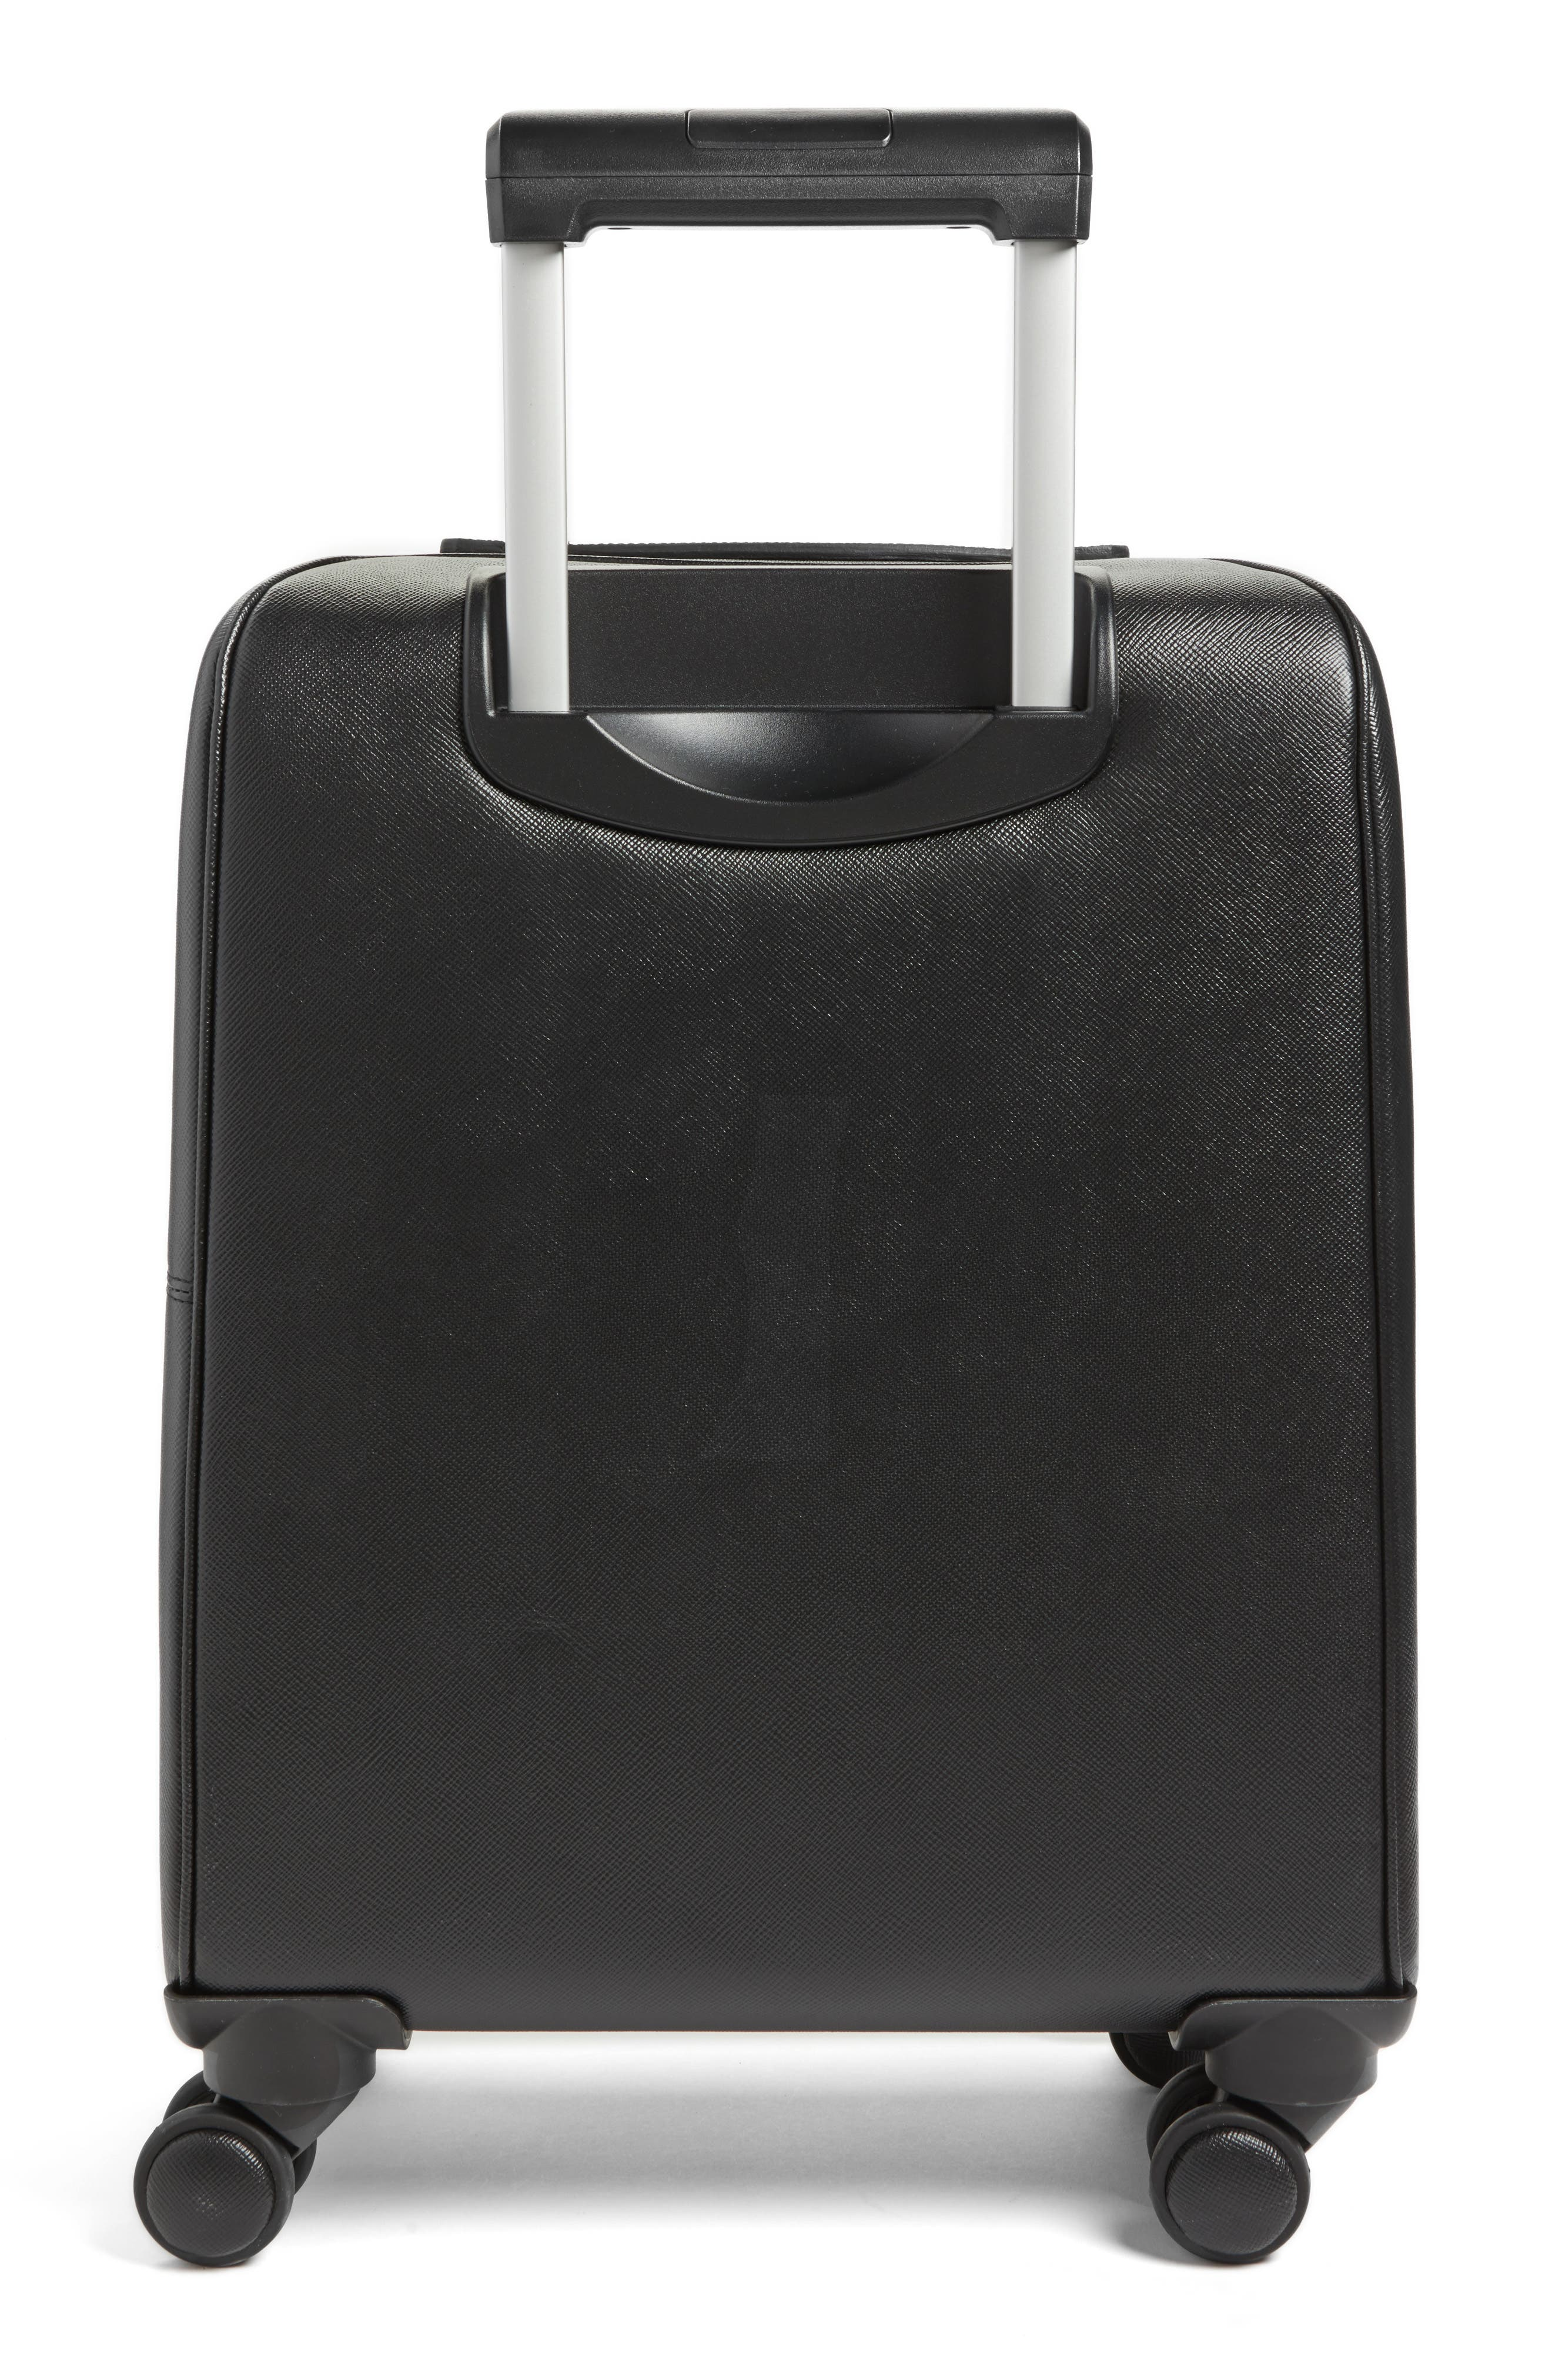 Trolley Spinner Wheeled Carry-On Suitcase,                             Alternate thumbnail 3, color,                             Black